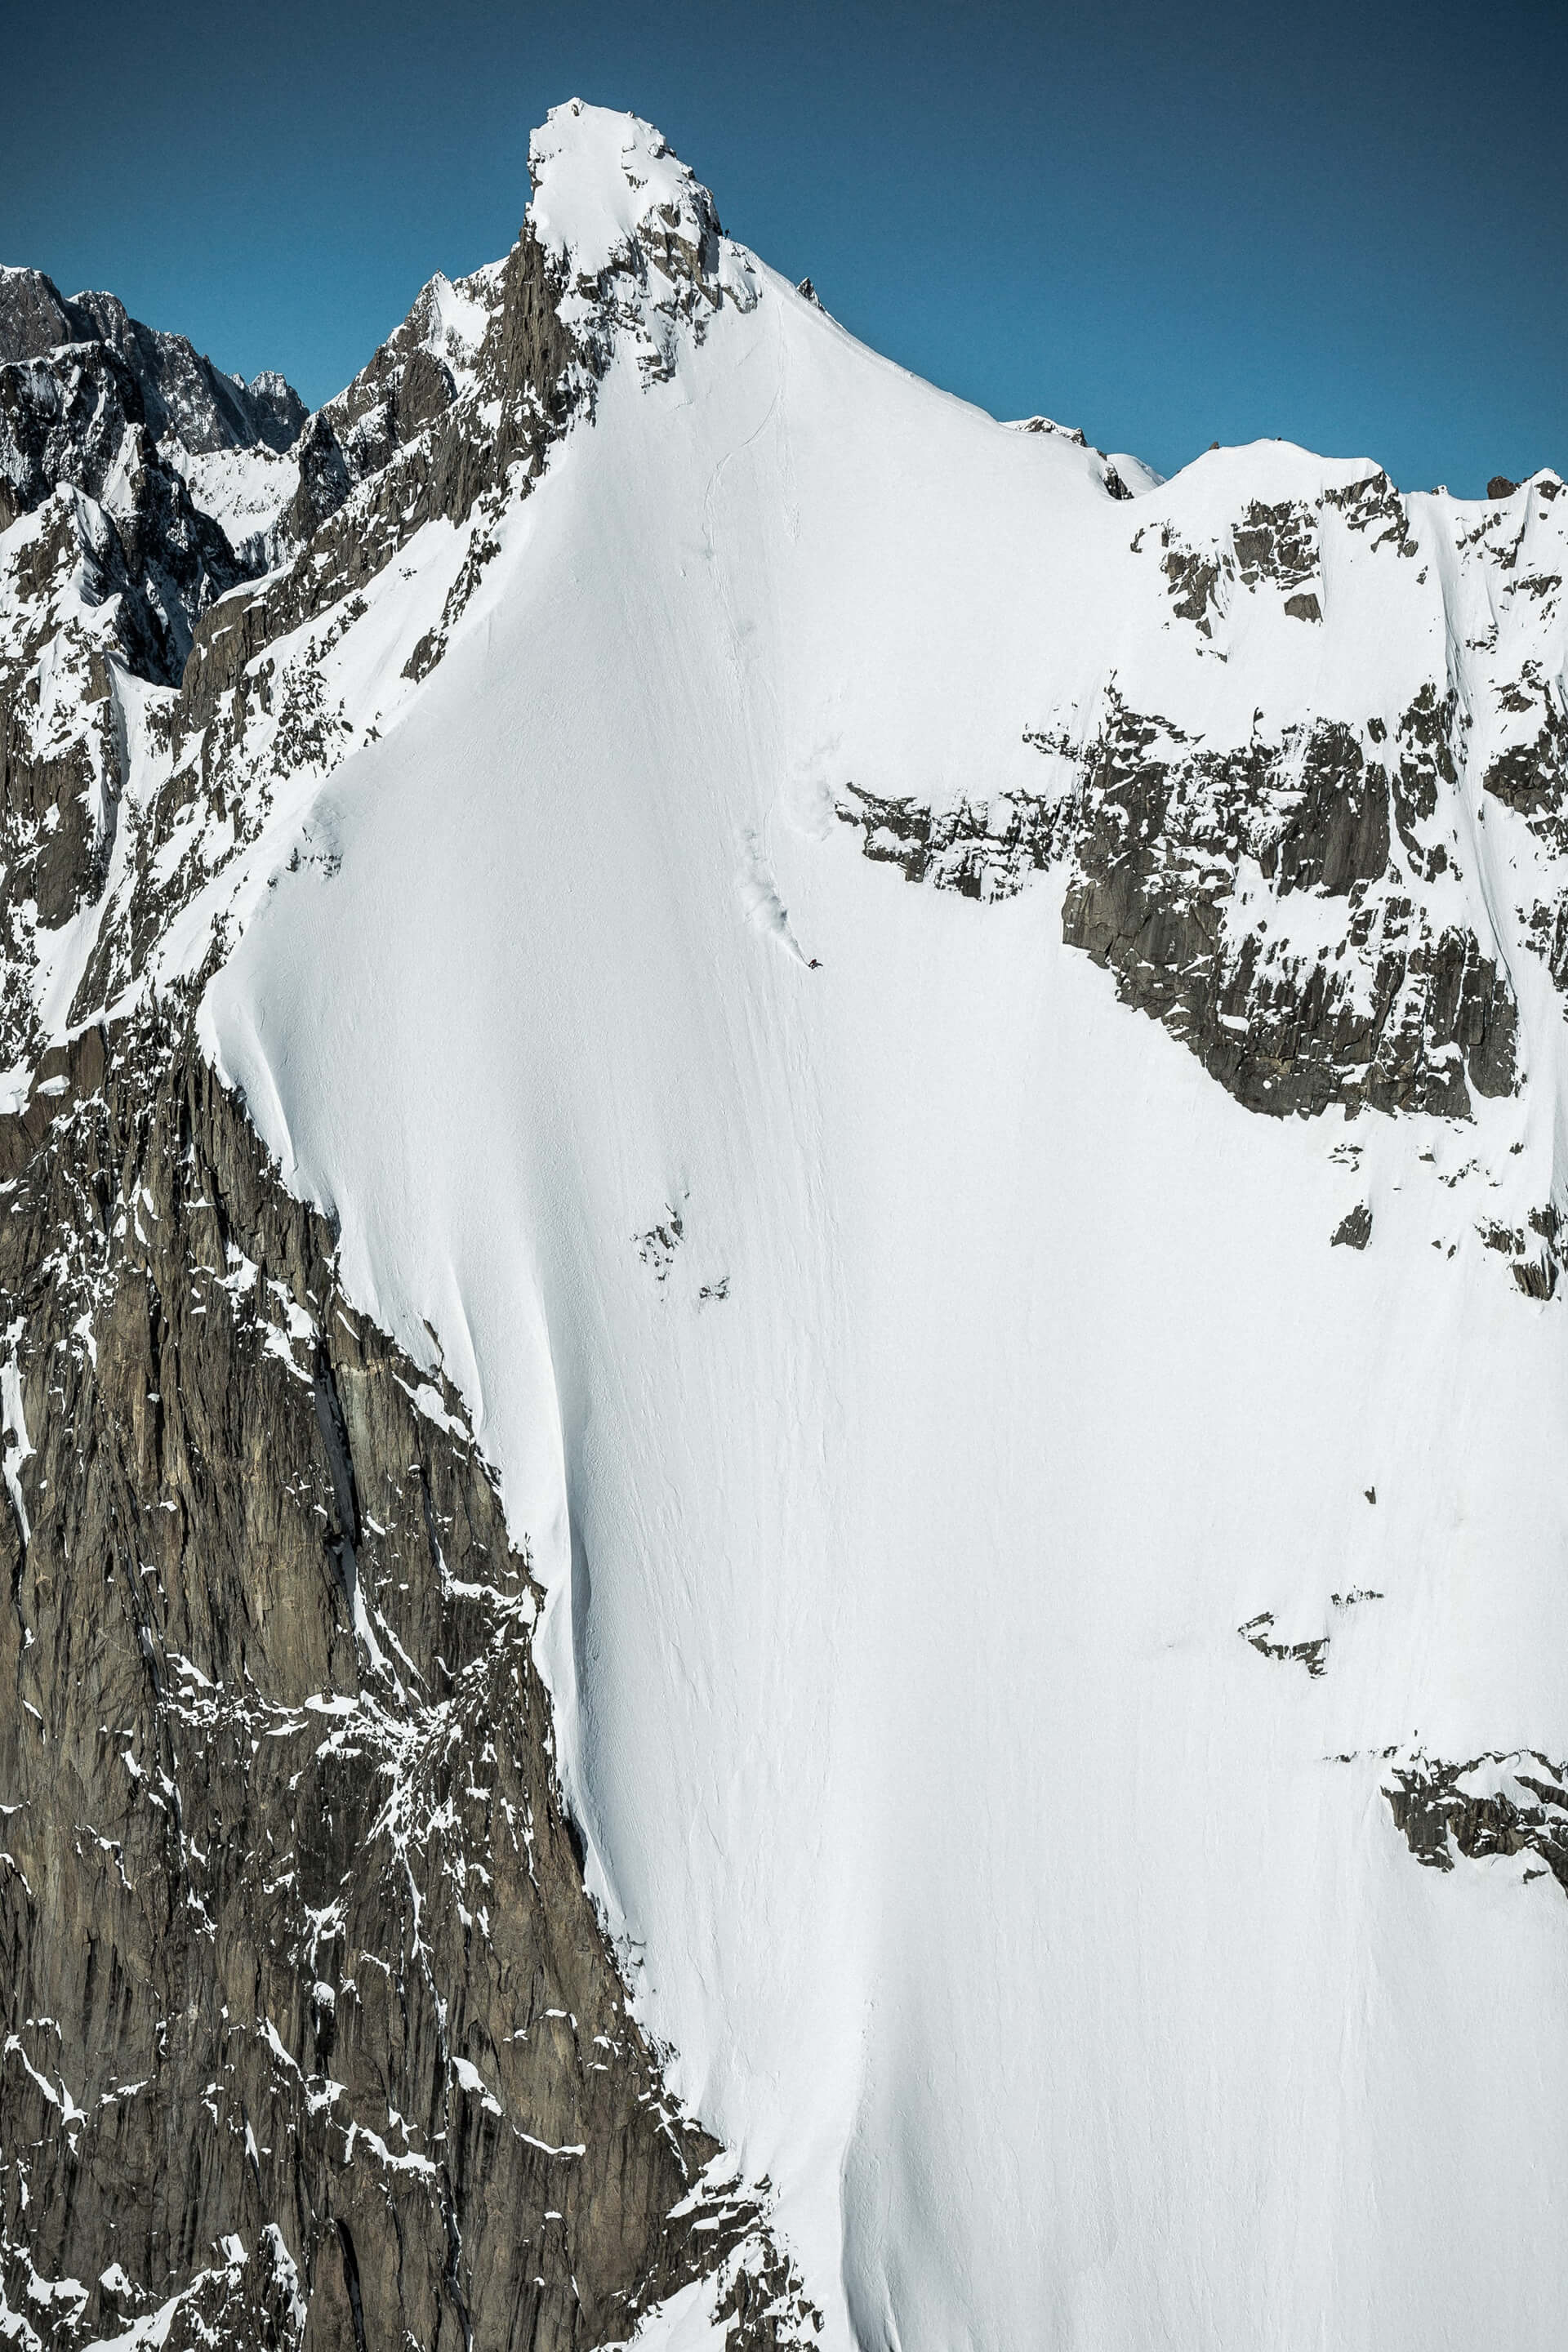 Wide angle shot of Haibike Hero Victor Delerue standing on top of a high mountain waiting to descend with his snowboard